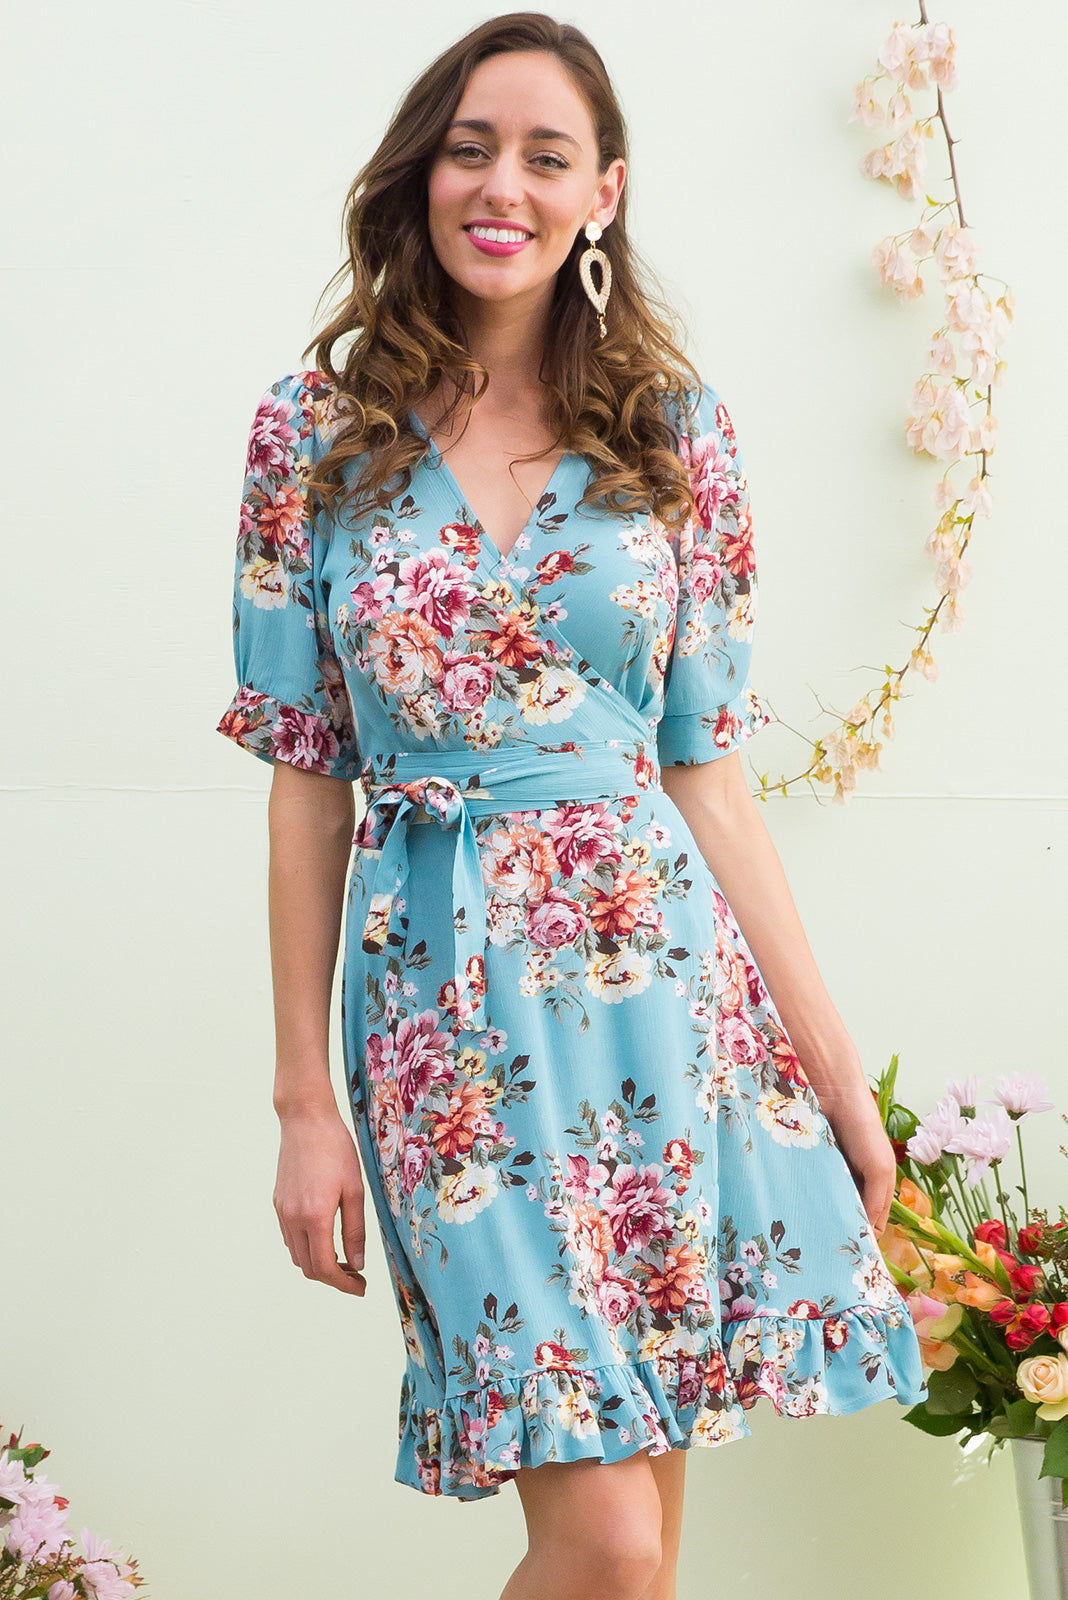 Antigua Summerhouse Blue Maxi Wrap Dress in a 1940's inspired style with cuffed midi sleeves and a delicate hemline frill in a sea foam blue and romantic rose floral print on crinkle woven rayon